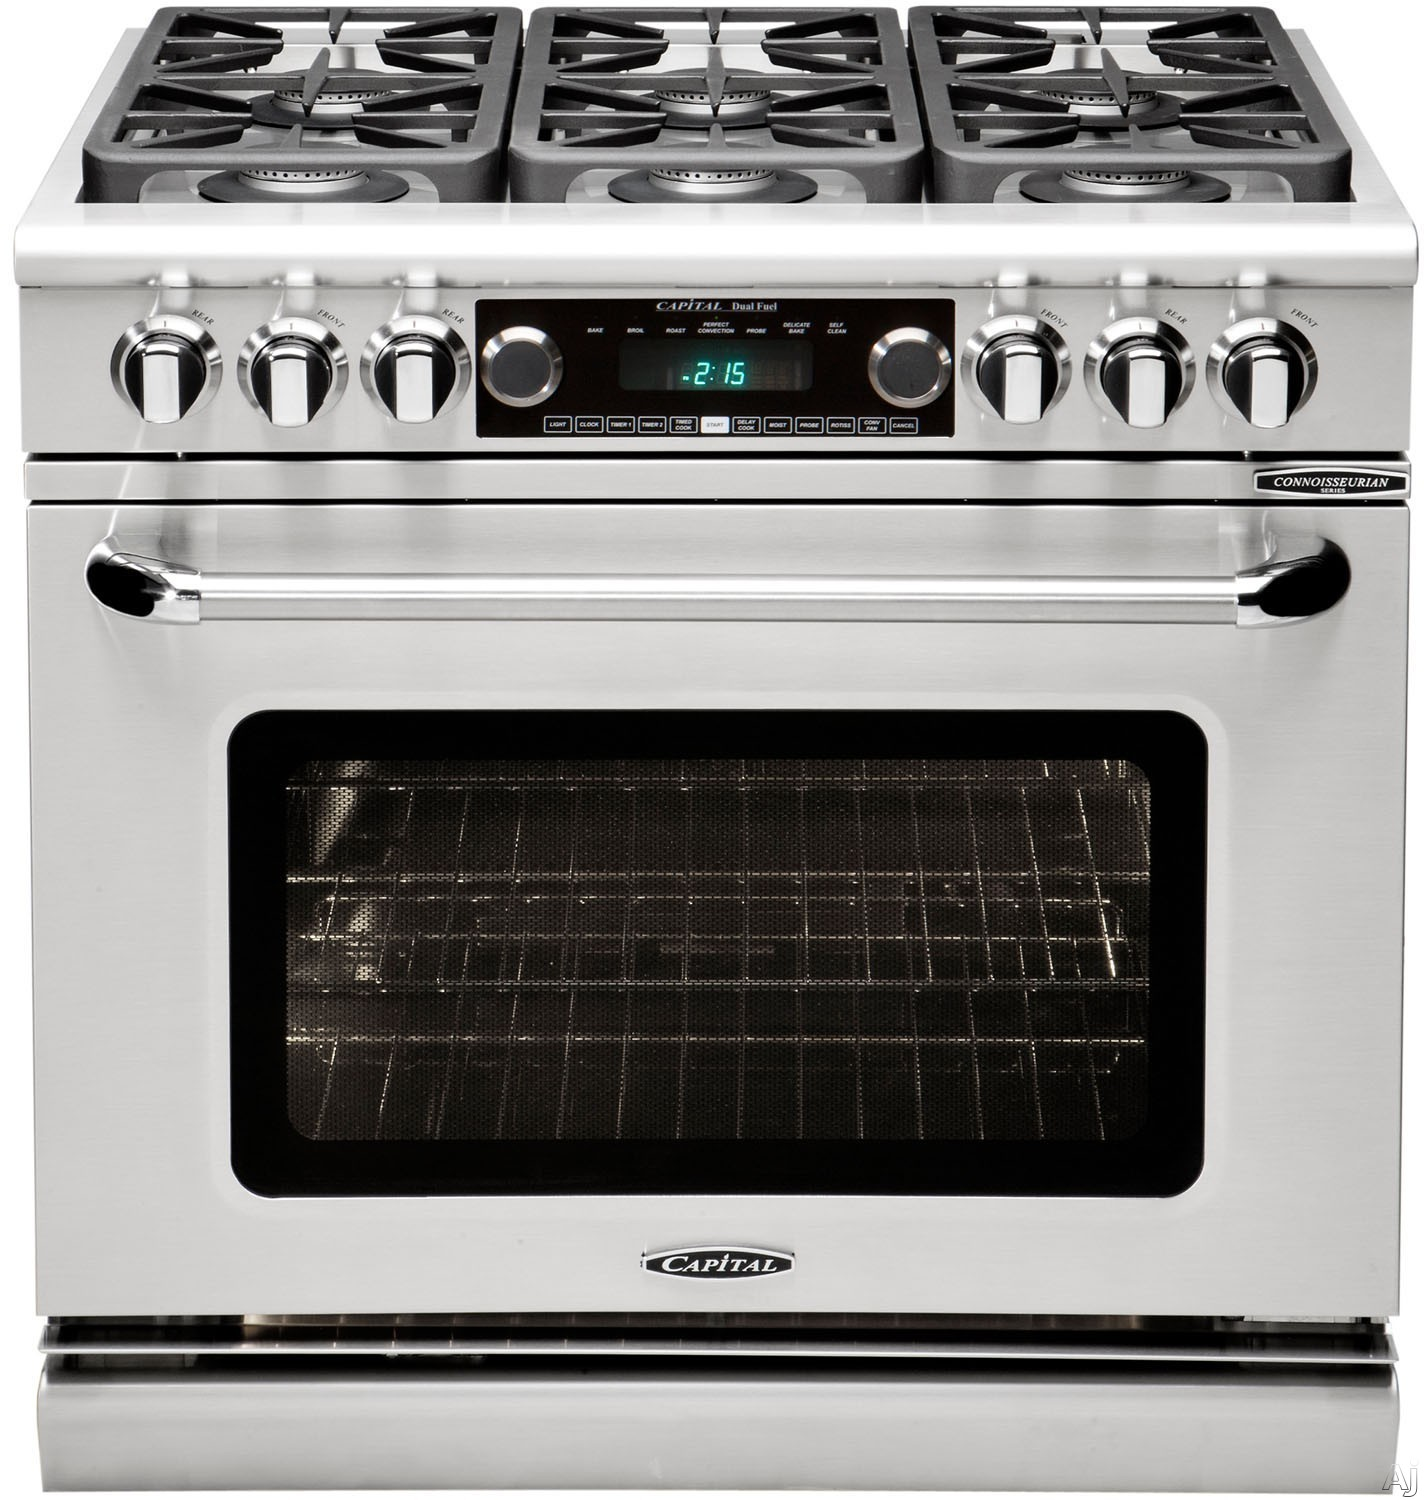 """Capital Connoisseurian Series CSB362B2L 36 Inch Pro-Style Dual Fuel Range with 4 Sealed Burners, 12"""""""" BBQ Grill, Dual Air-Flow Convection, Dual Kitchen Timers, Moto-Rotisâ""""¢ Rotisserie, Moist Bake Option and 5.4 cu. ft. Oven: Stainless Steel, Liquid Prop"""